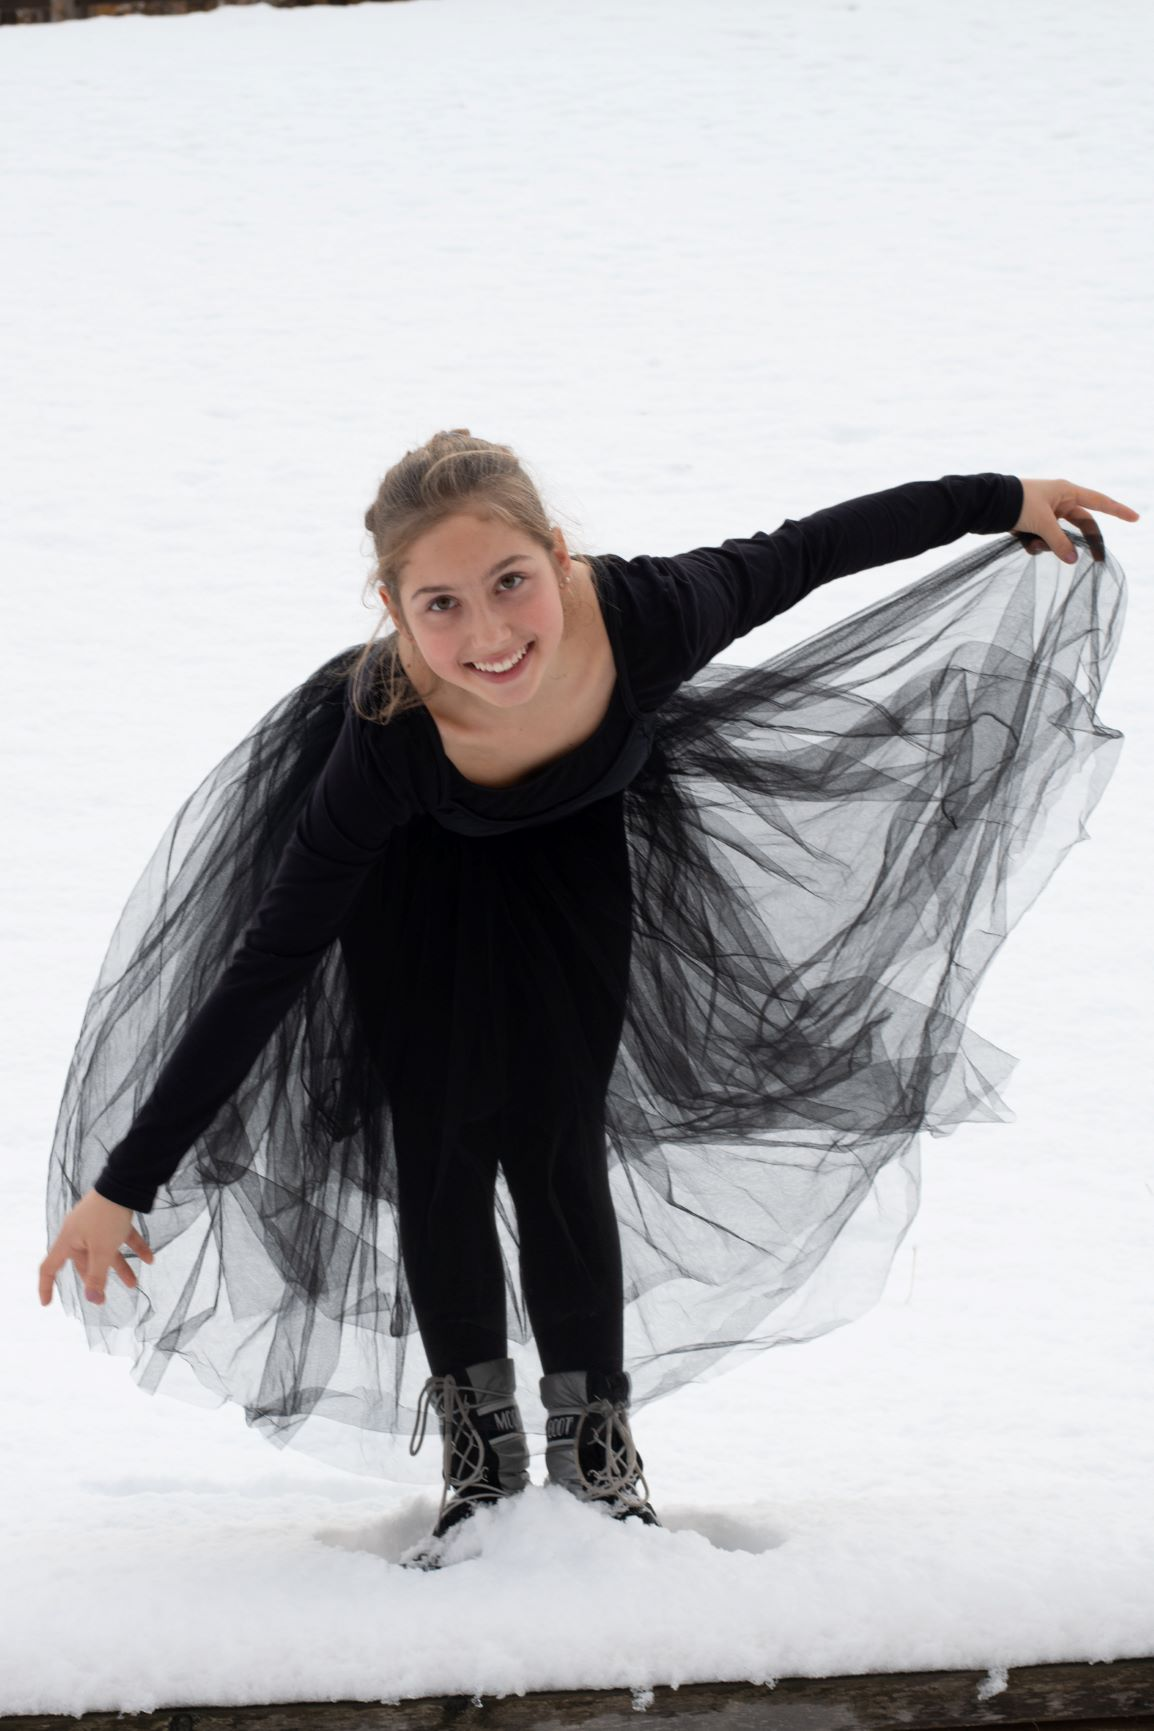 Ballerina - Révérénce in Snow 3 - Photo © Daniela Brugger